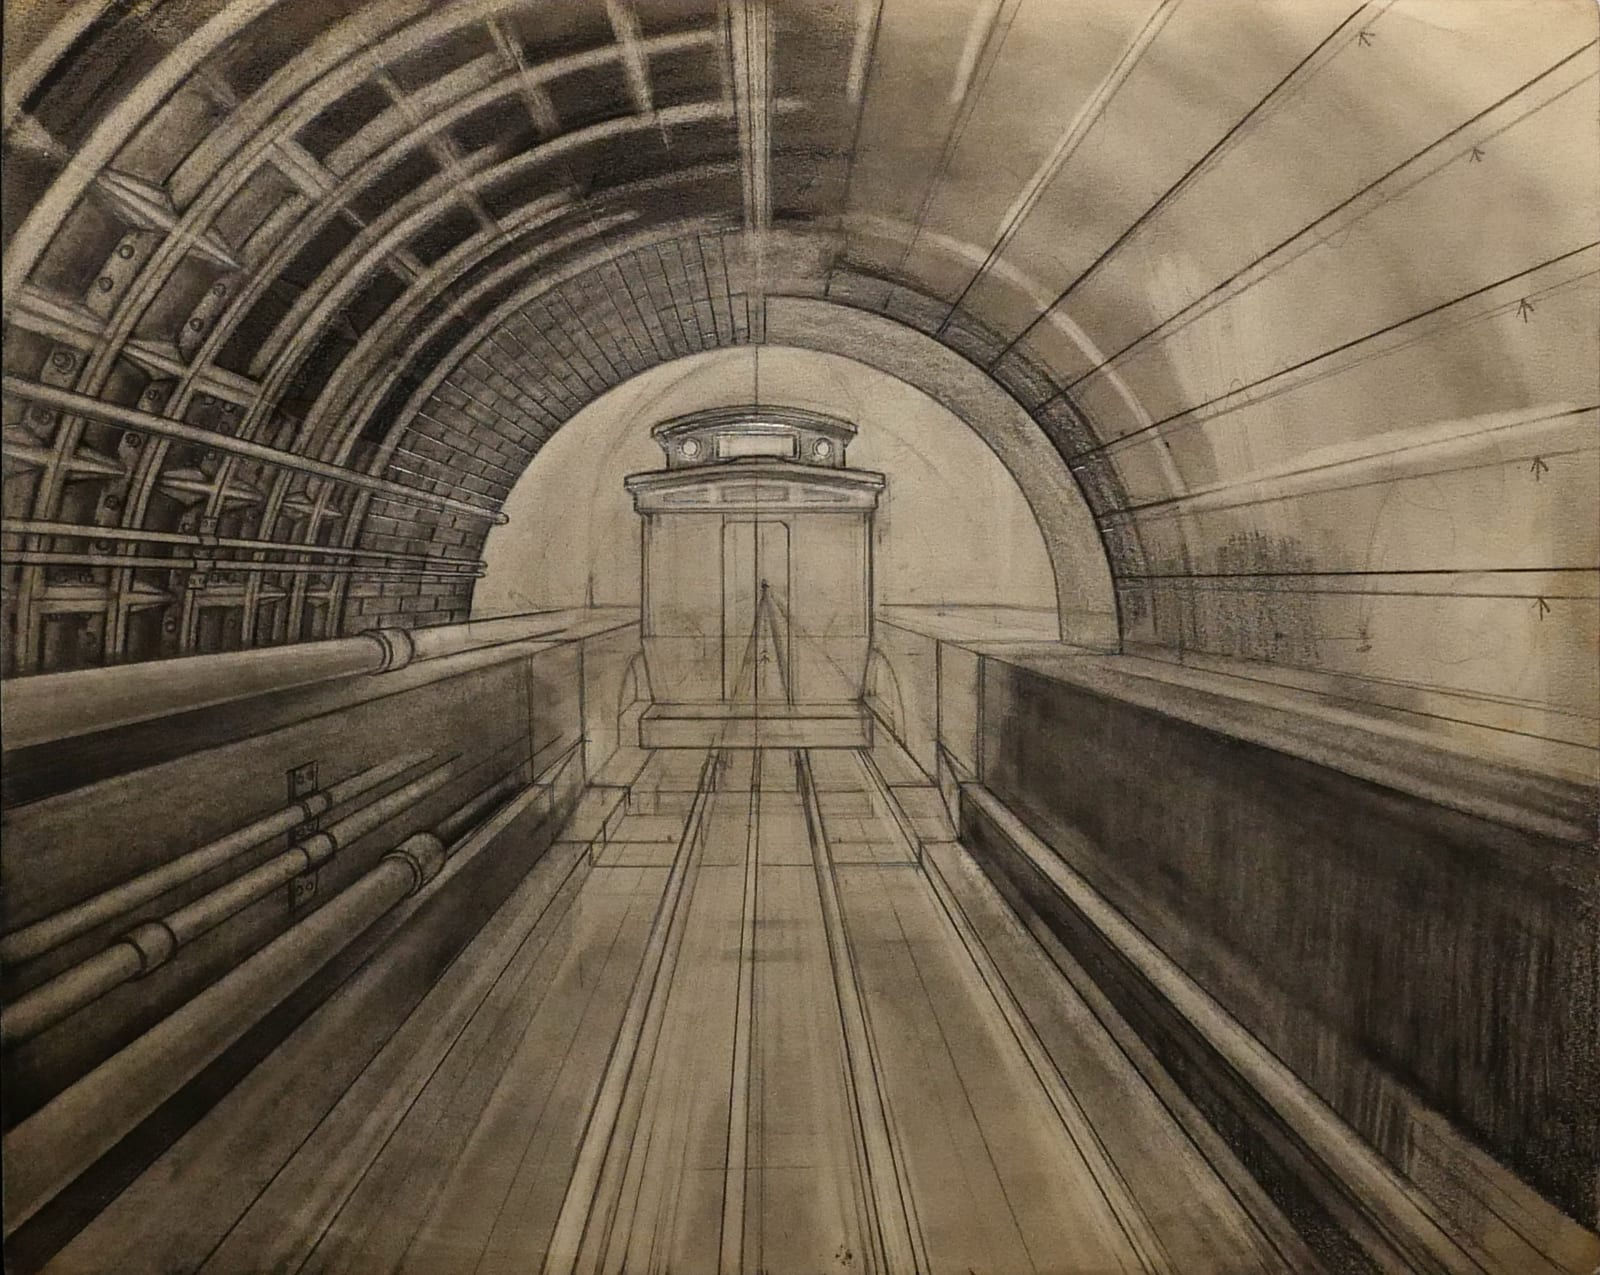 The Oriental tube cable car in tunnel ca. 1960s Graphite on sketch paper 11 x 14 in. (RK 45) $7,000